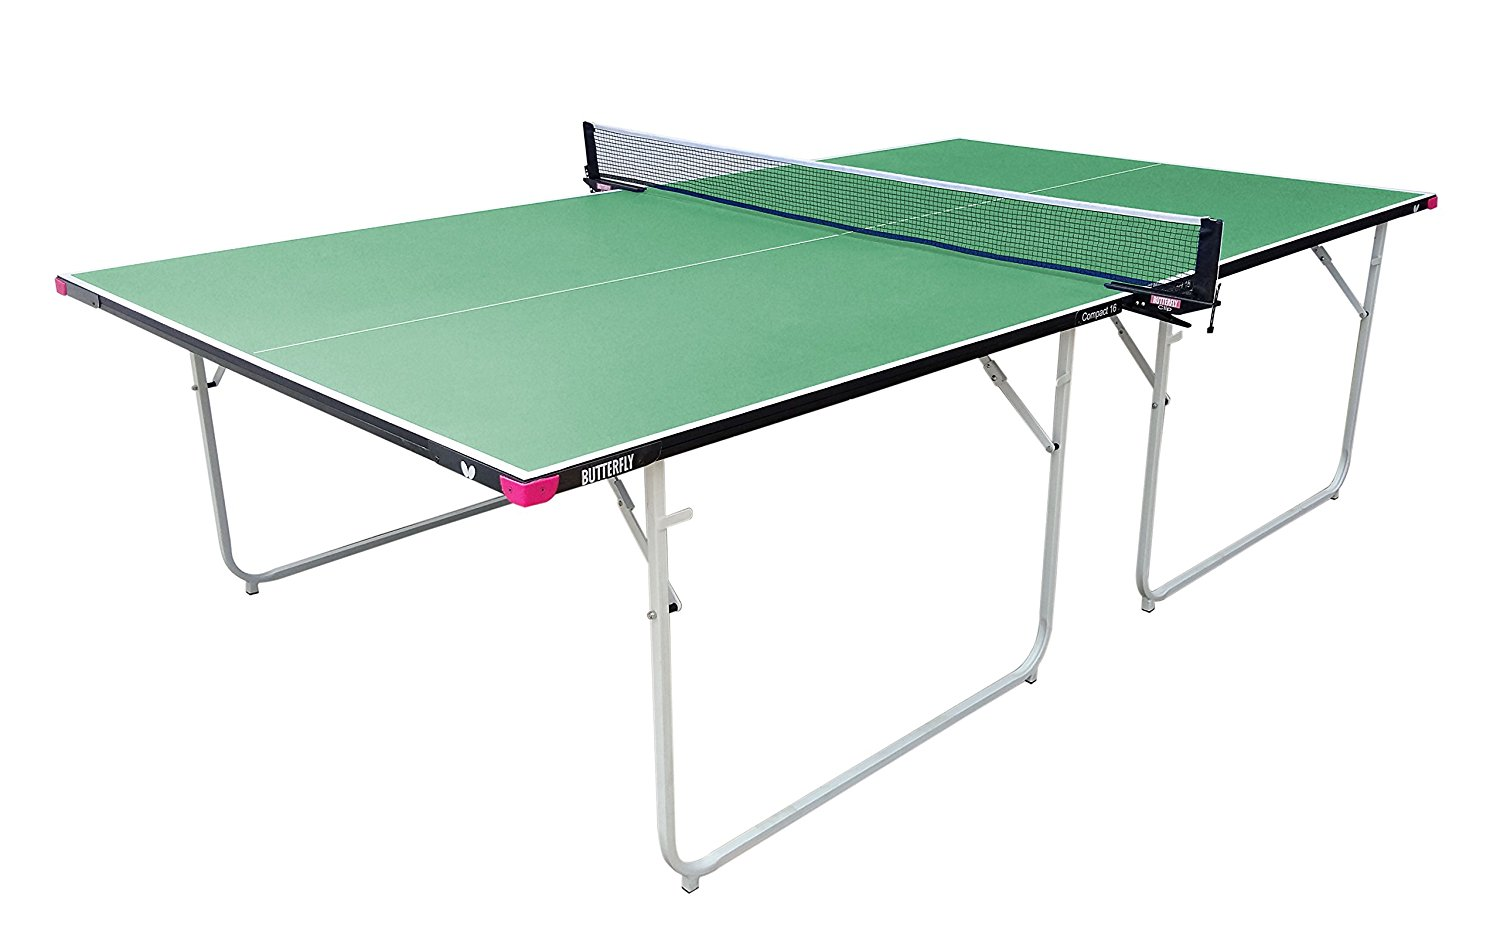 Peachy The 11 Best Ping Pong Tables Of 2019 Indoor Outdoor Reviews Download Free Architecture Designs Embacsunscenecom